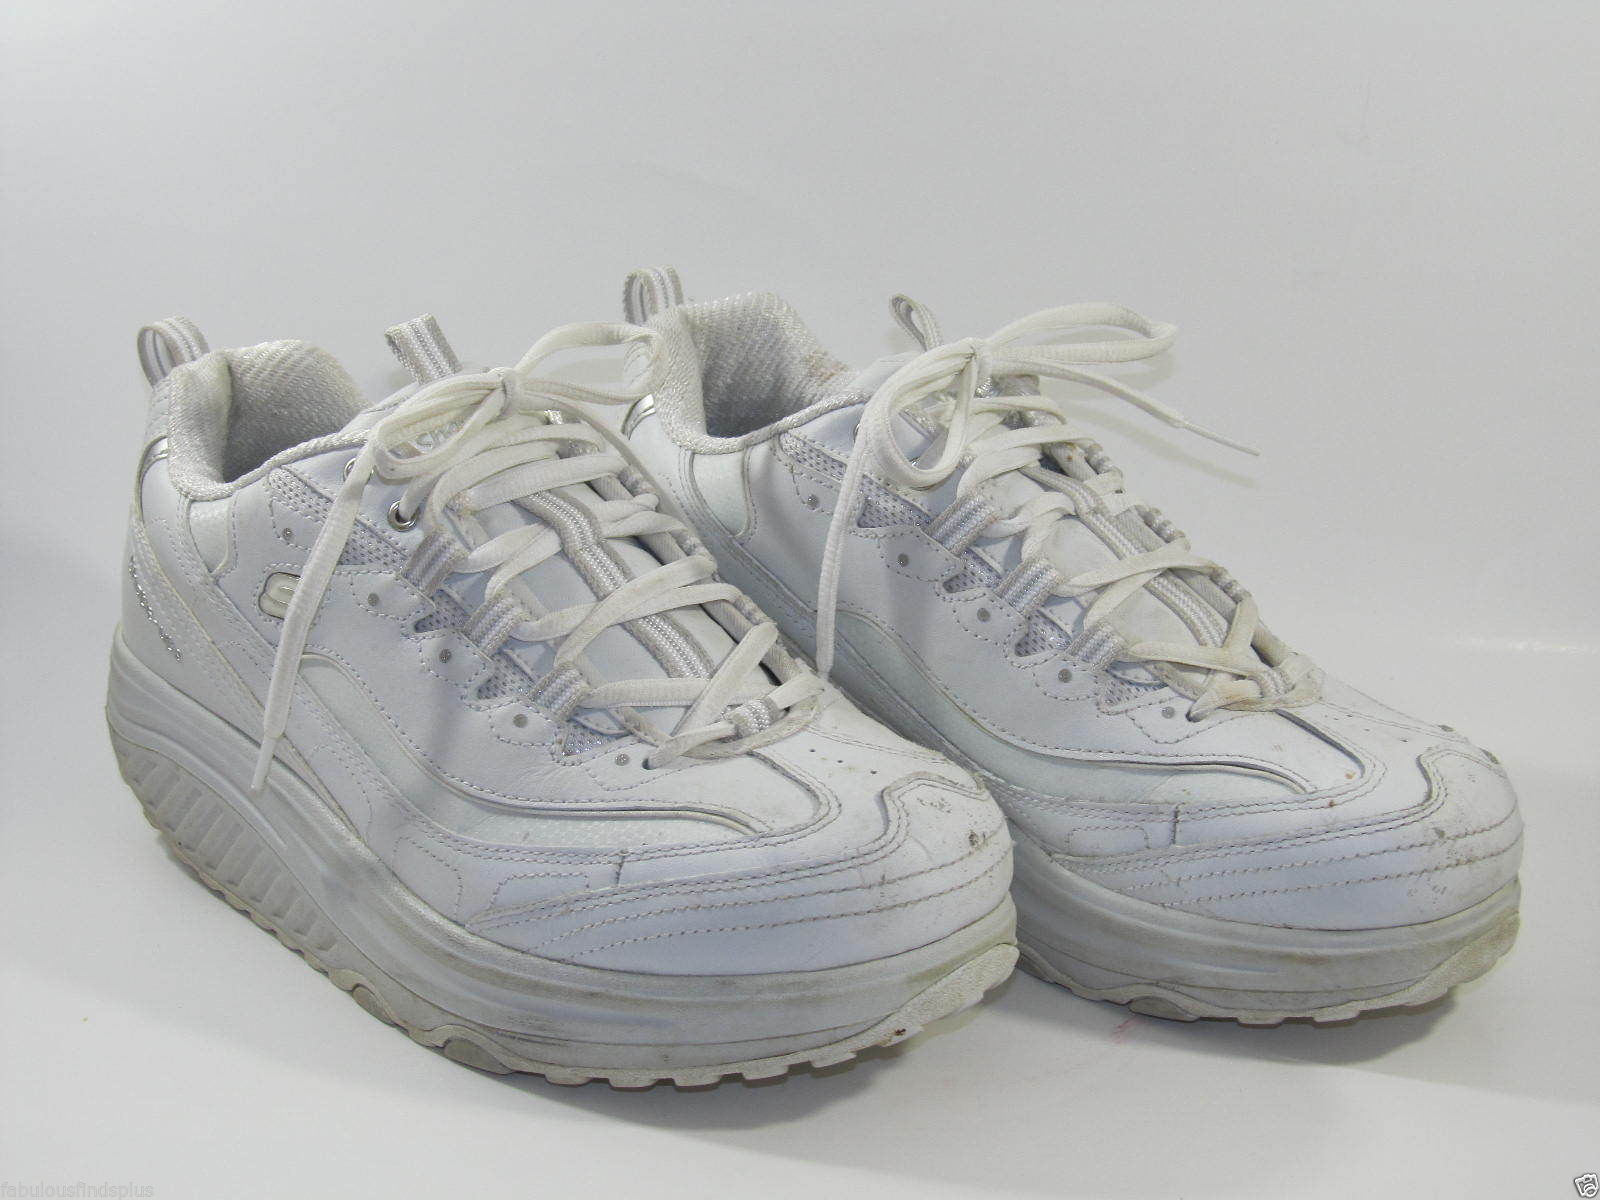 5a72efe8 57. 57. Previous. Skechers Shape Ups Womens Size 10 White Walking Athletic  Shoes pre owned · Skechers Shape ...